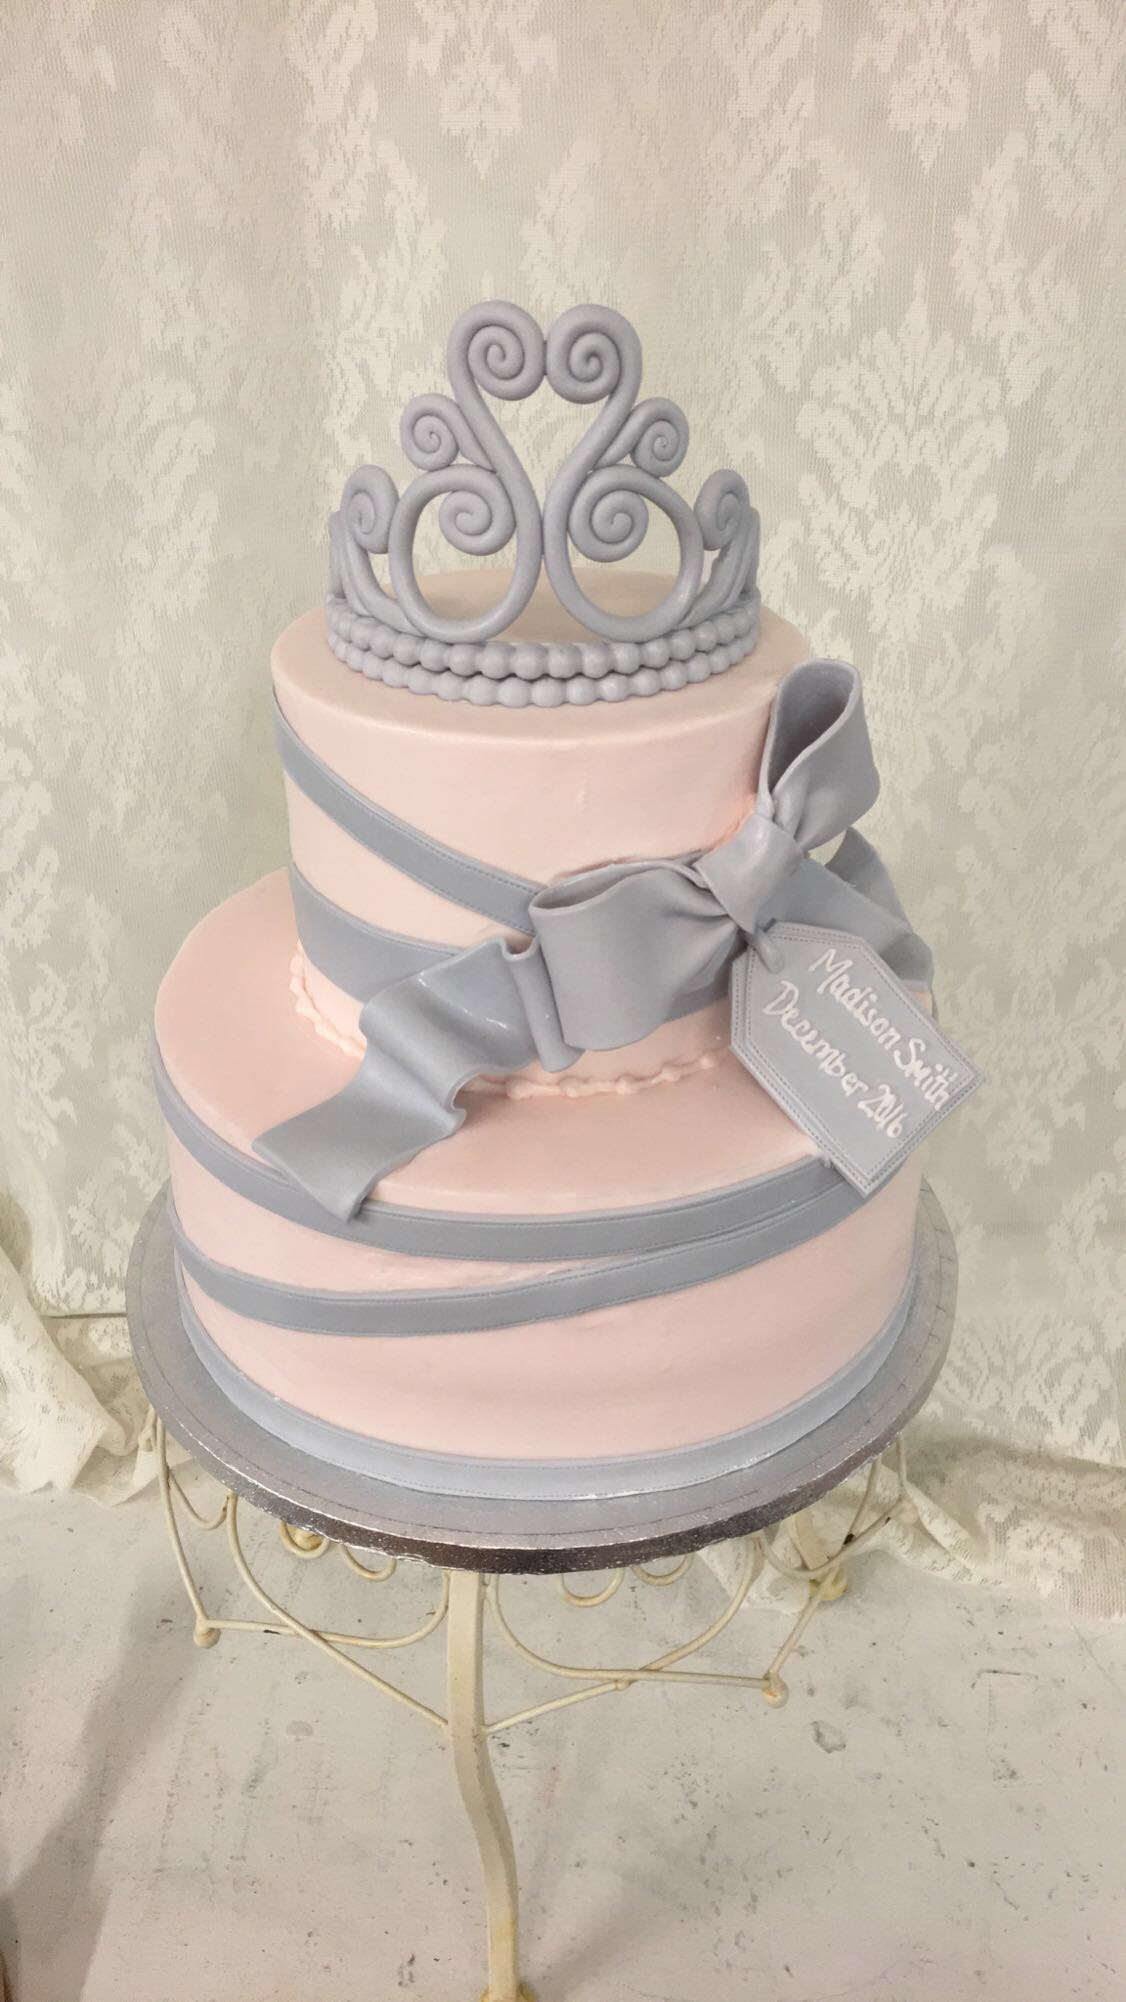 Request A Wedding Cake Quote Online From Cake Among Us Bakery Donuts